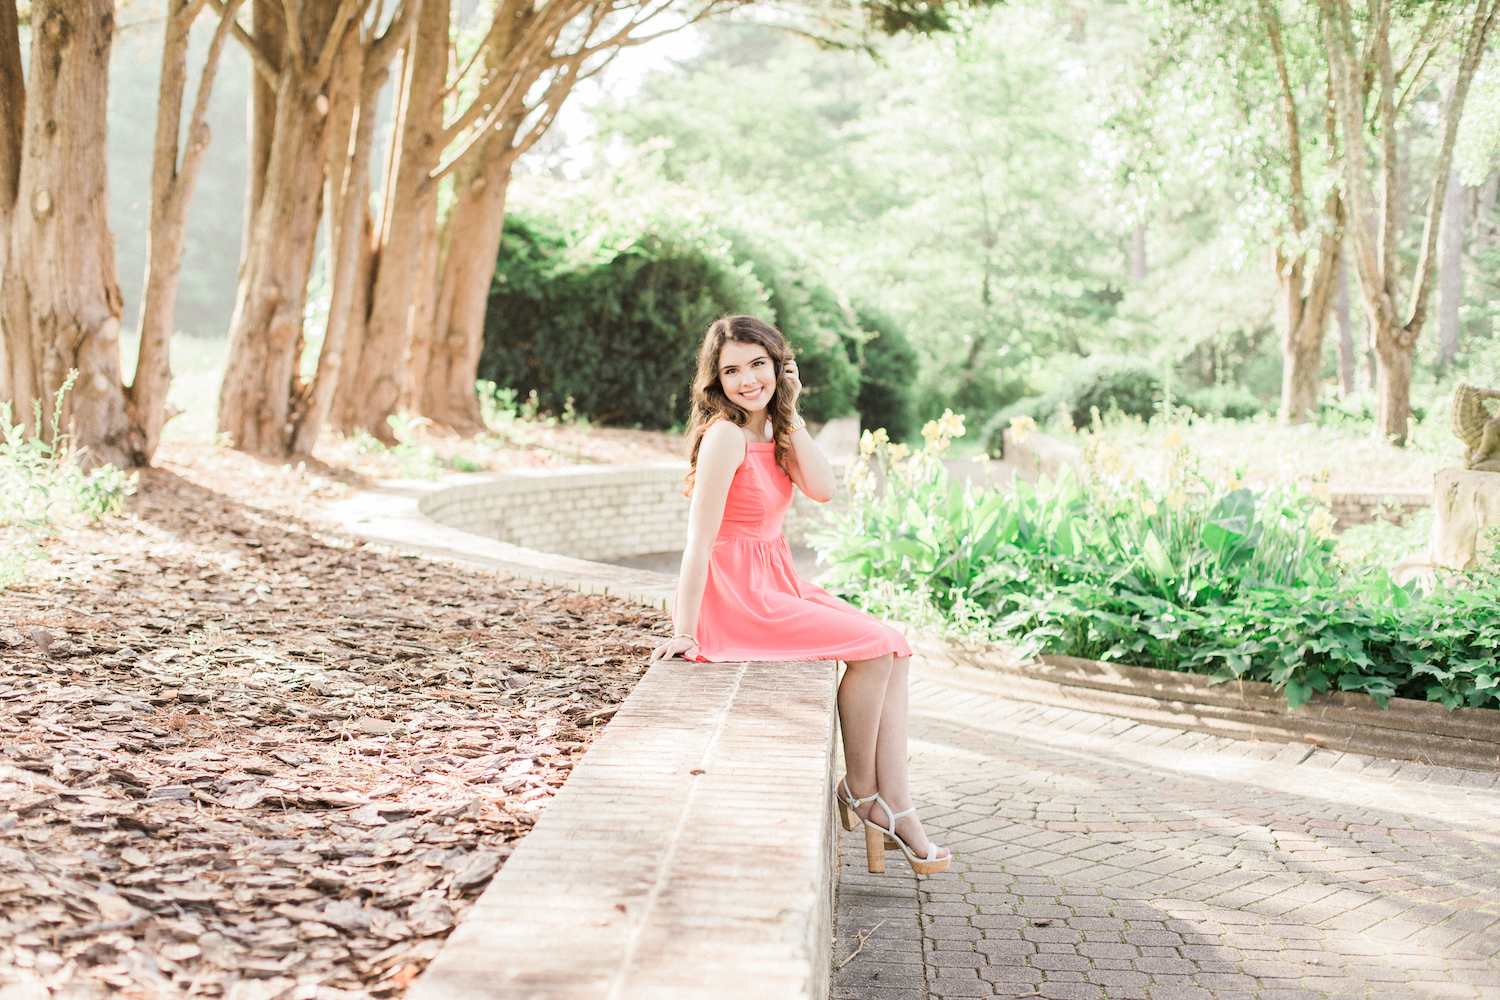 Summer time high school senior session at Vine Mansion Park by Kesia Marie Photography. Featuring feminine, garden details. Senior photos in gorgeous morning light with flowers.